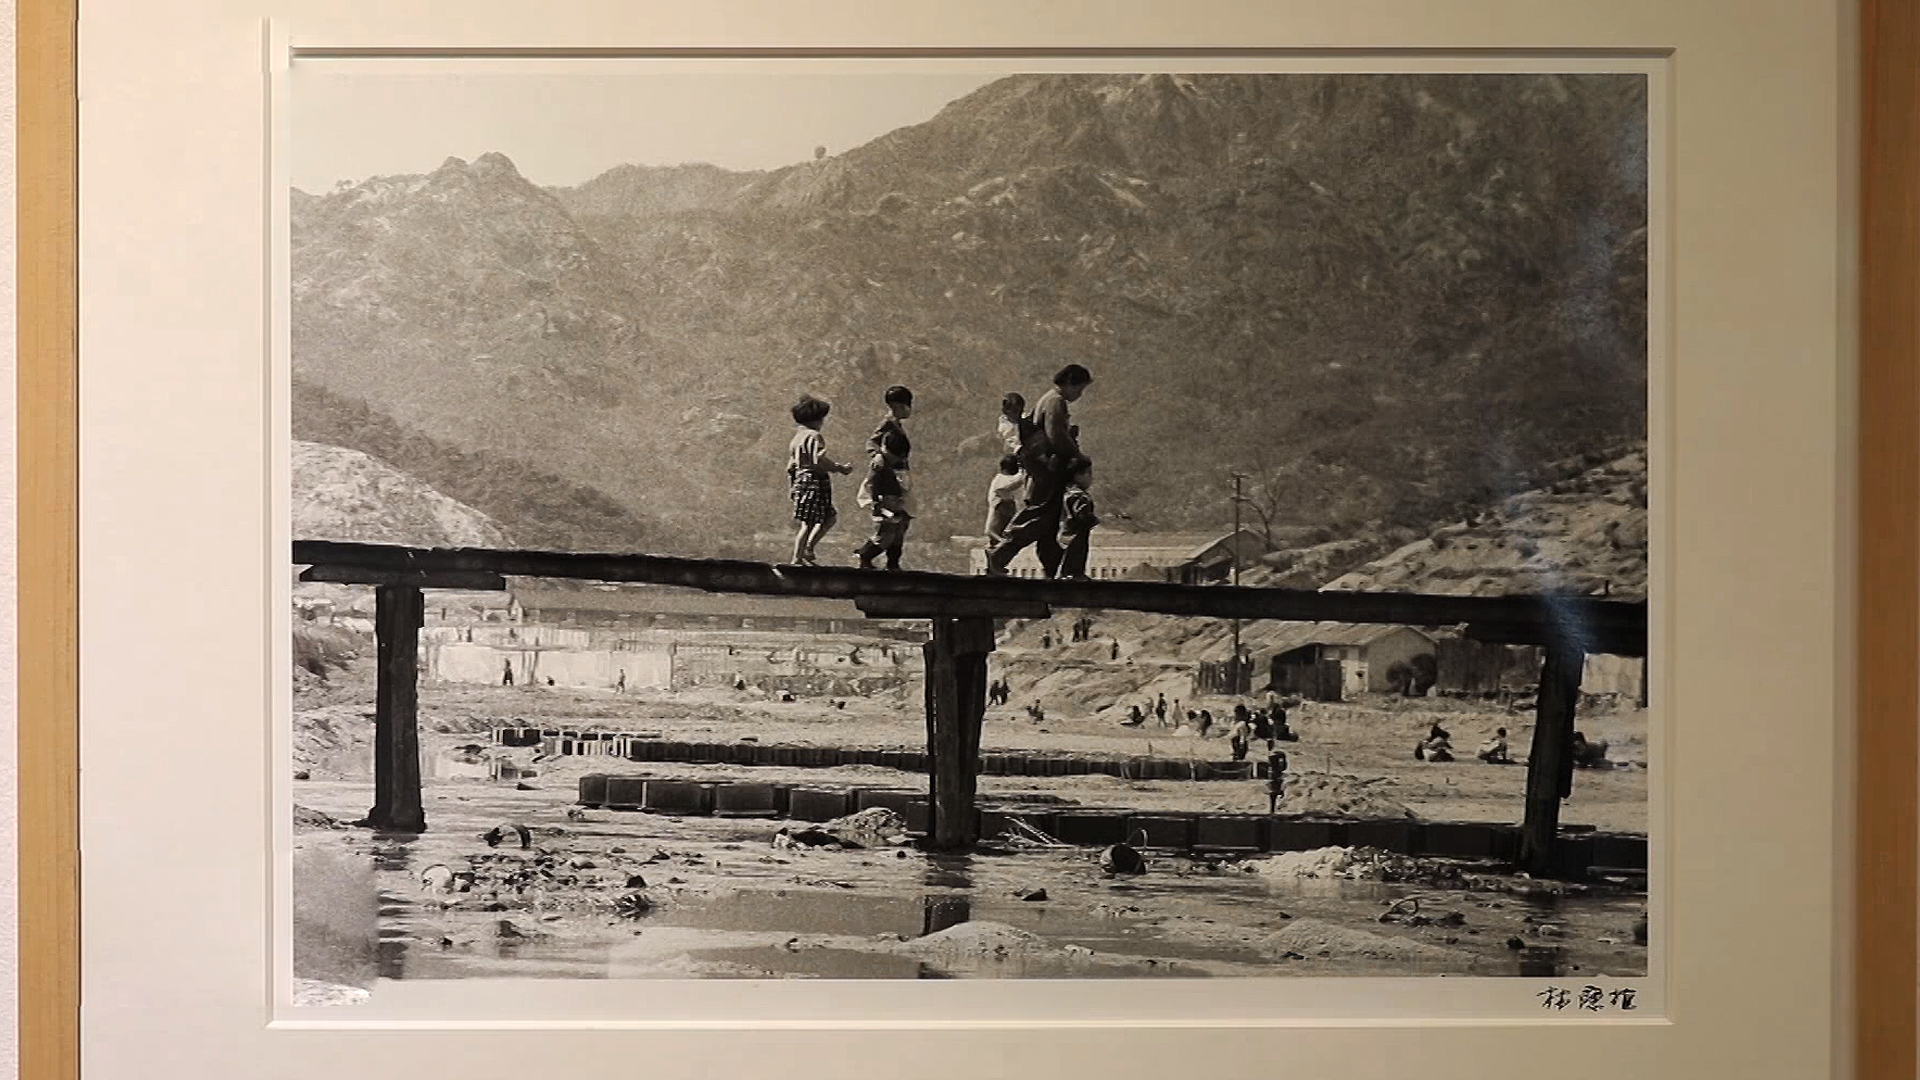 Ep.104 [Portraits of Korea in the 1950's-60's by Photographer Limb Eung-sik / June 28, Railroad Day - Connecting Two Koreas / Korea launches QR code entry logs]